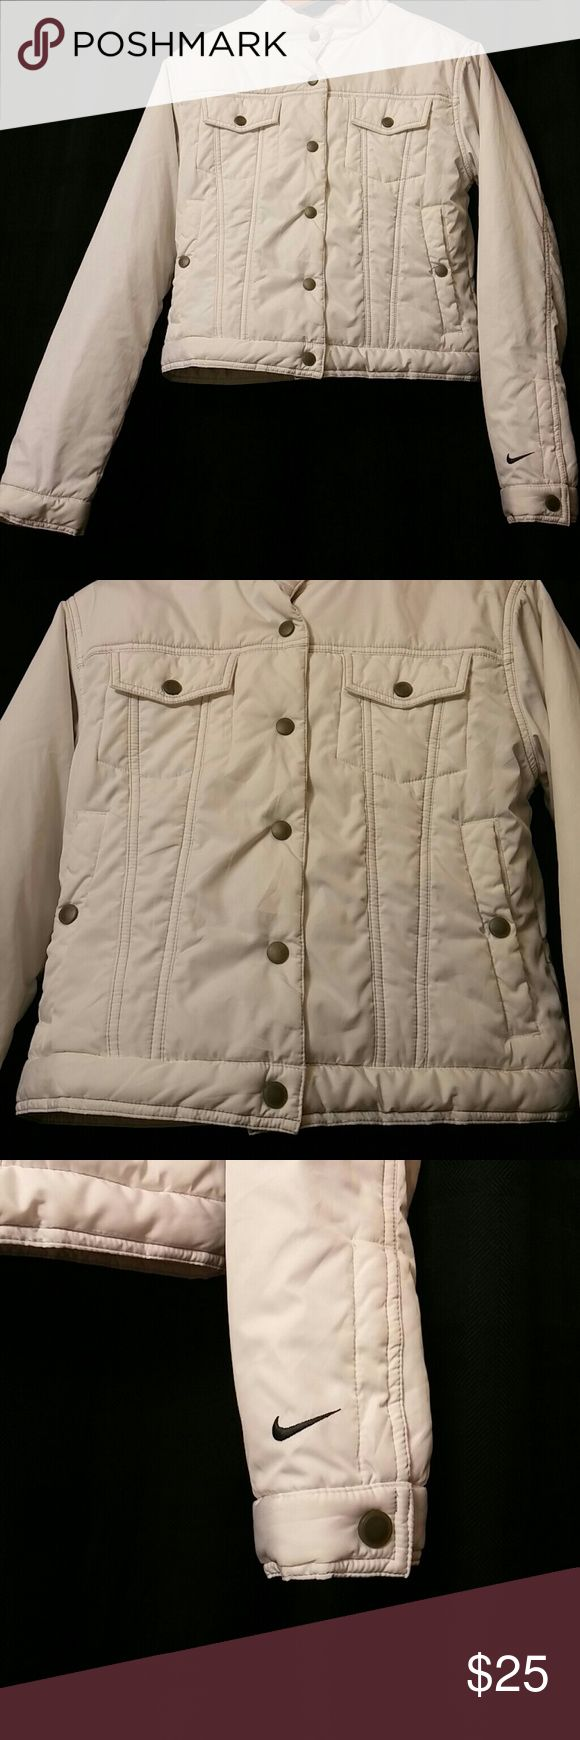 Nike Coat This is a light weight, waist hugger coa, by Nike. Excellent used condition.   All my used items are freshly laundered prior to shipping. Smoke free home. Pet friendly home. Nike Jackets & Coats